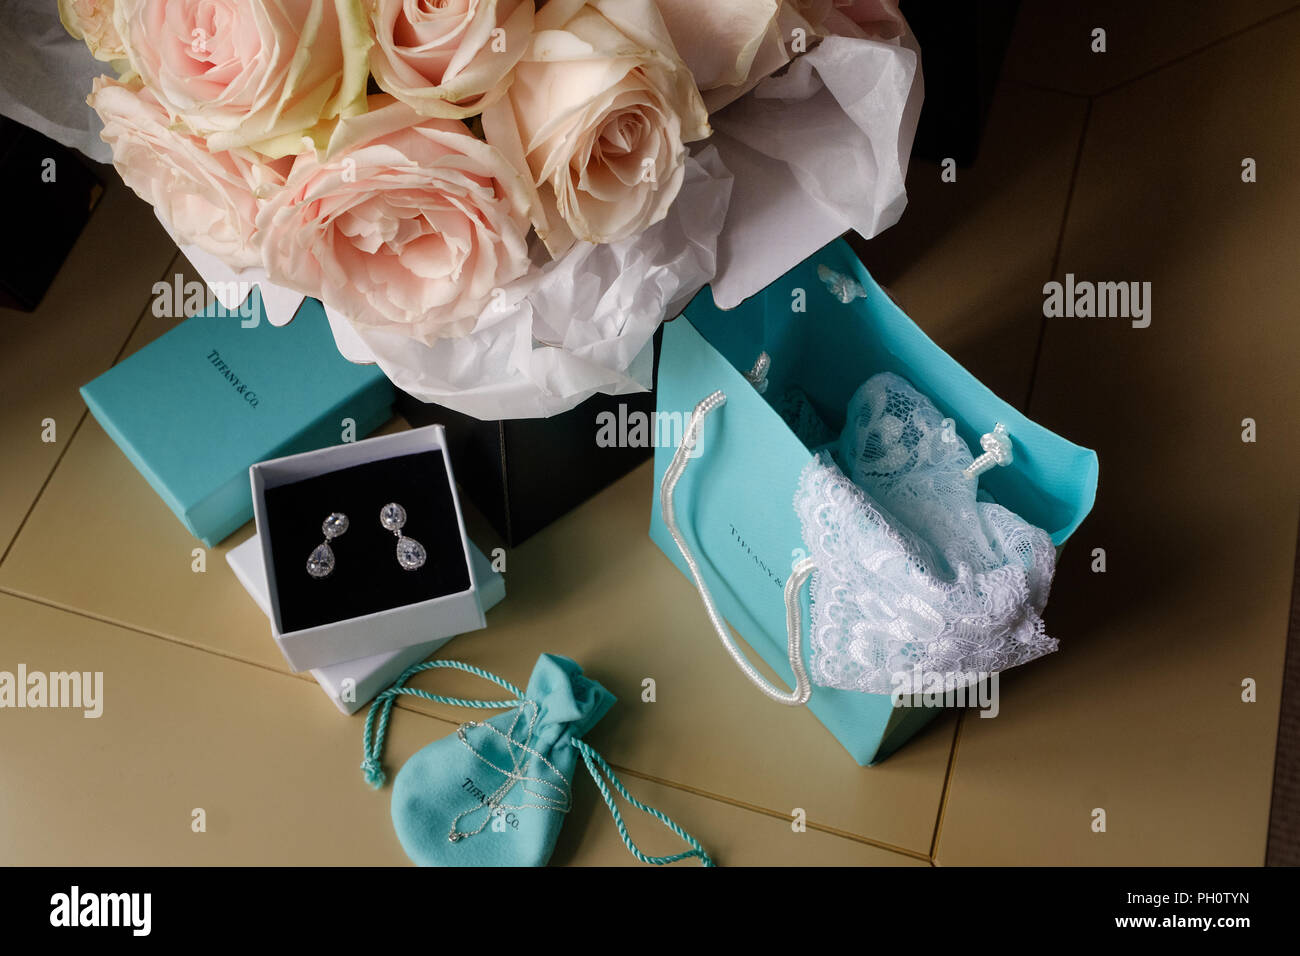 Bridal Accesories - Stock Image